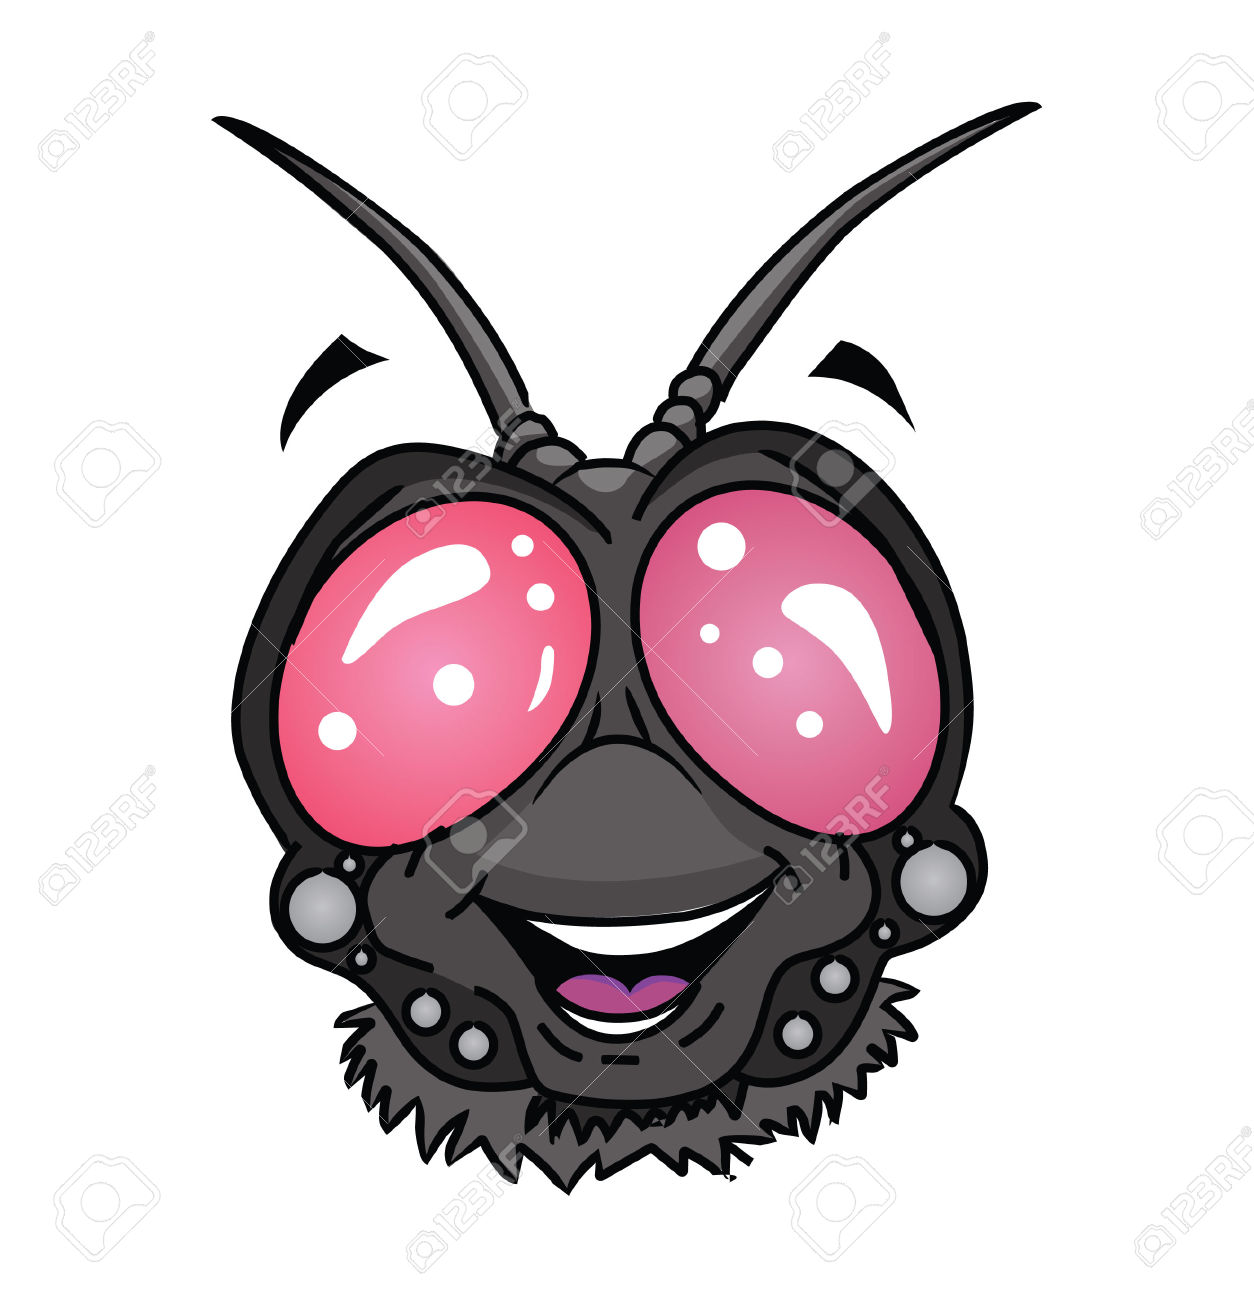 Fly Insect Head Cartoon Royalty Free Cliparts, Vectors, And Stock.